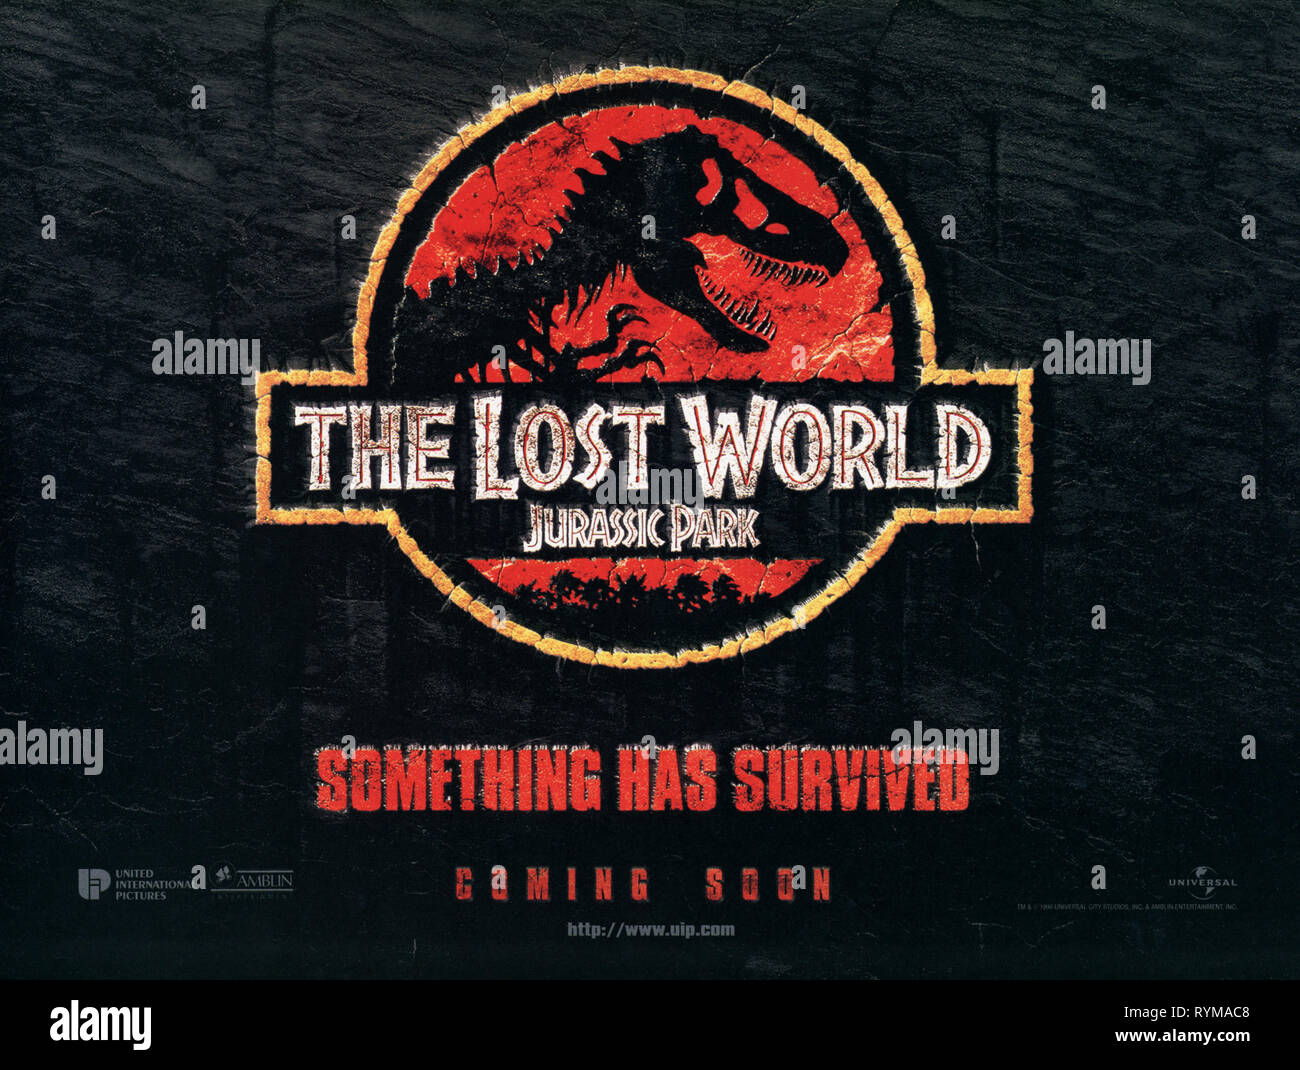 Lost World Jurassic Park High Resolution Stock Photography And Images Alamy